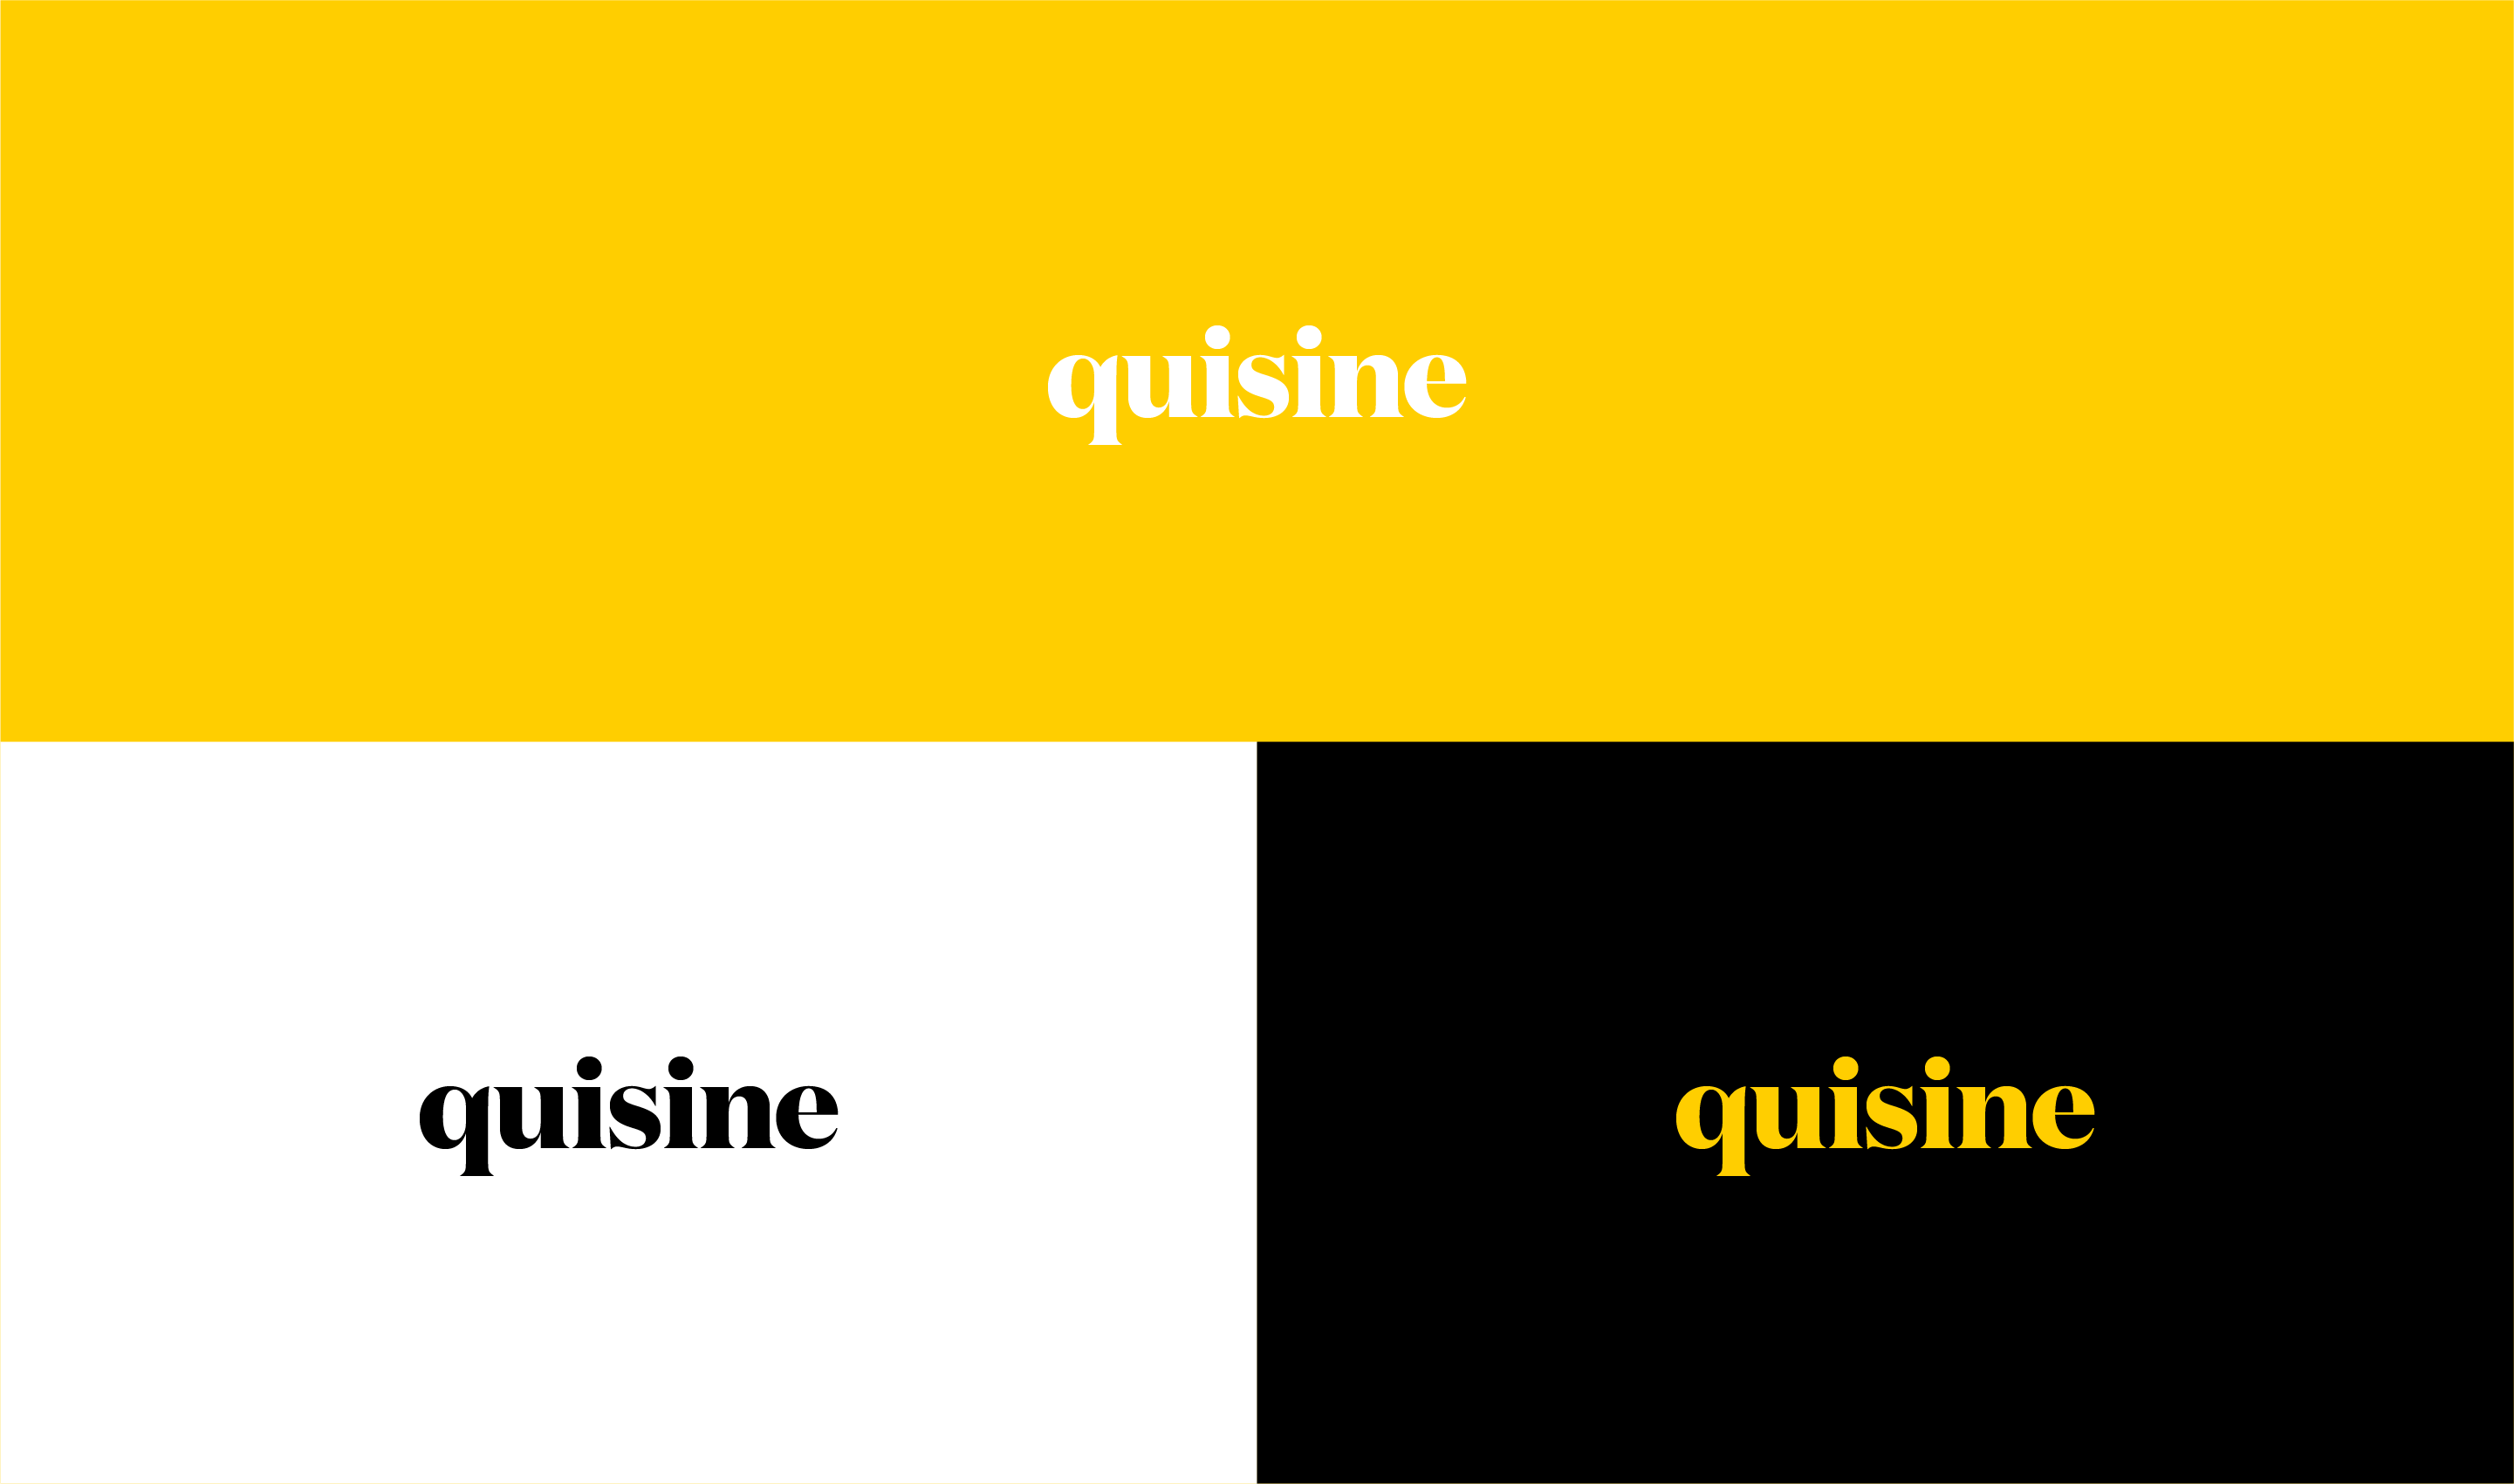 quisine logo colours